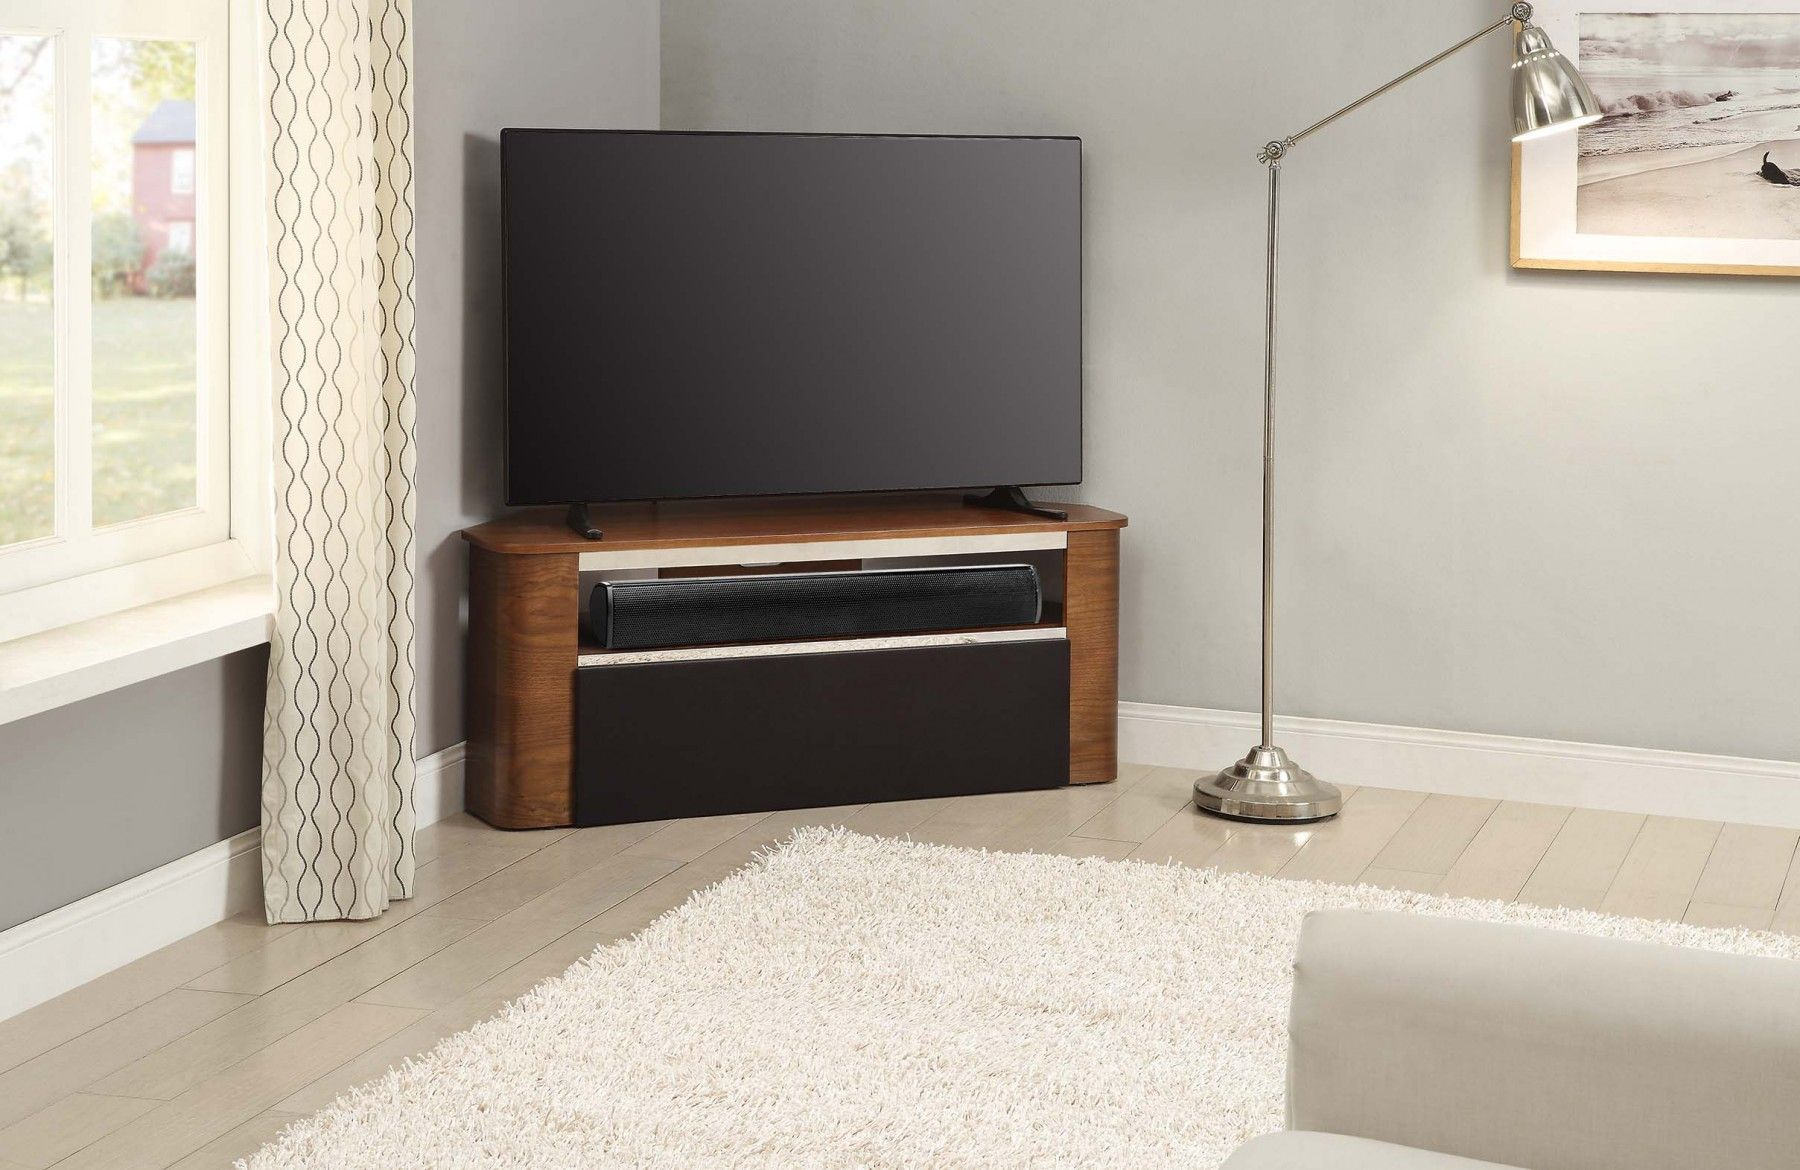 Jual Furnishings Jf708 Walnut Acoustic Tv Stand It Allows You To